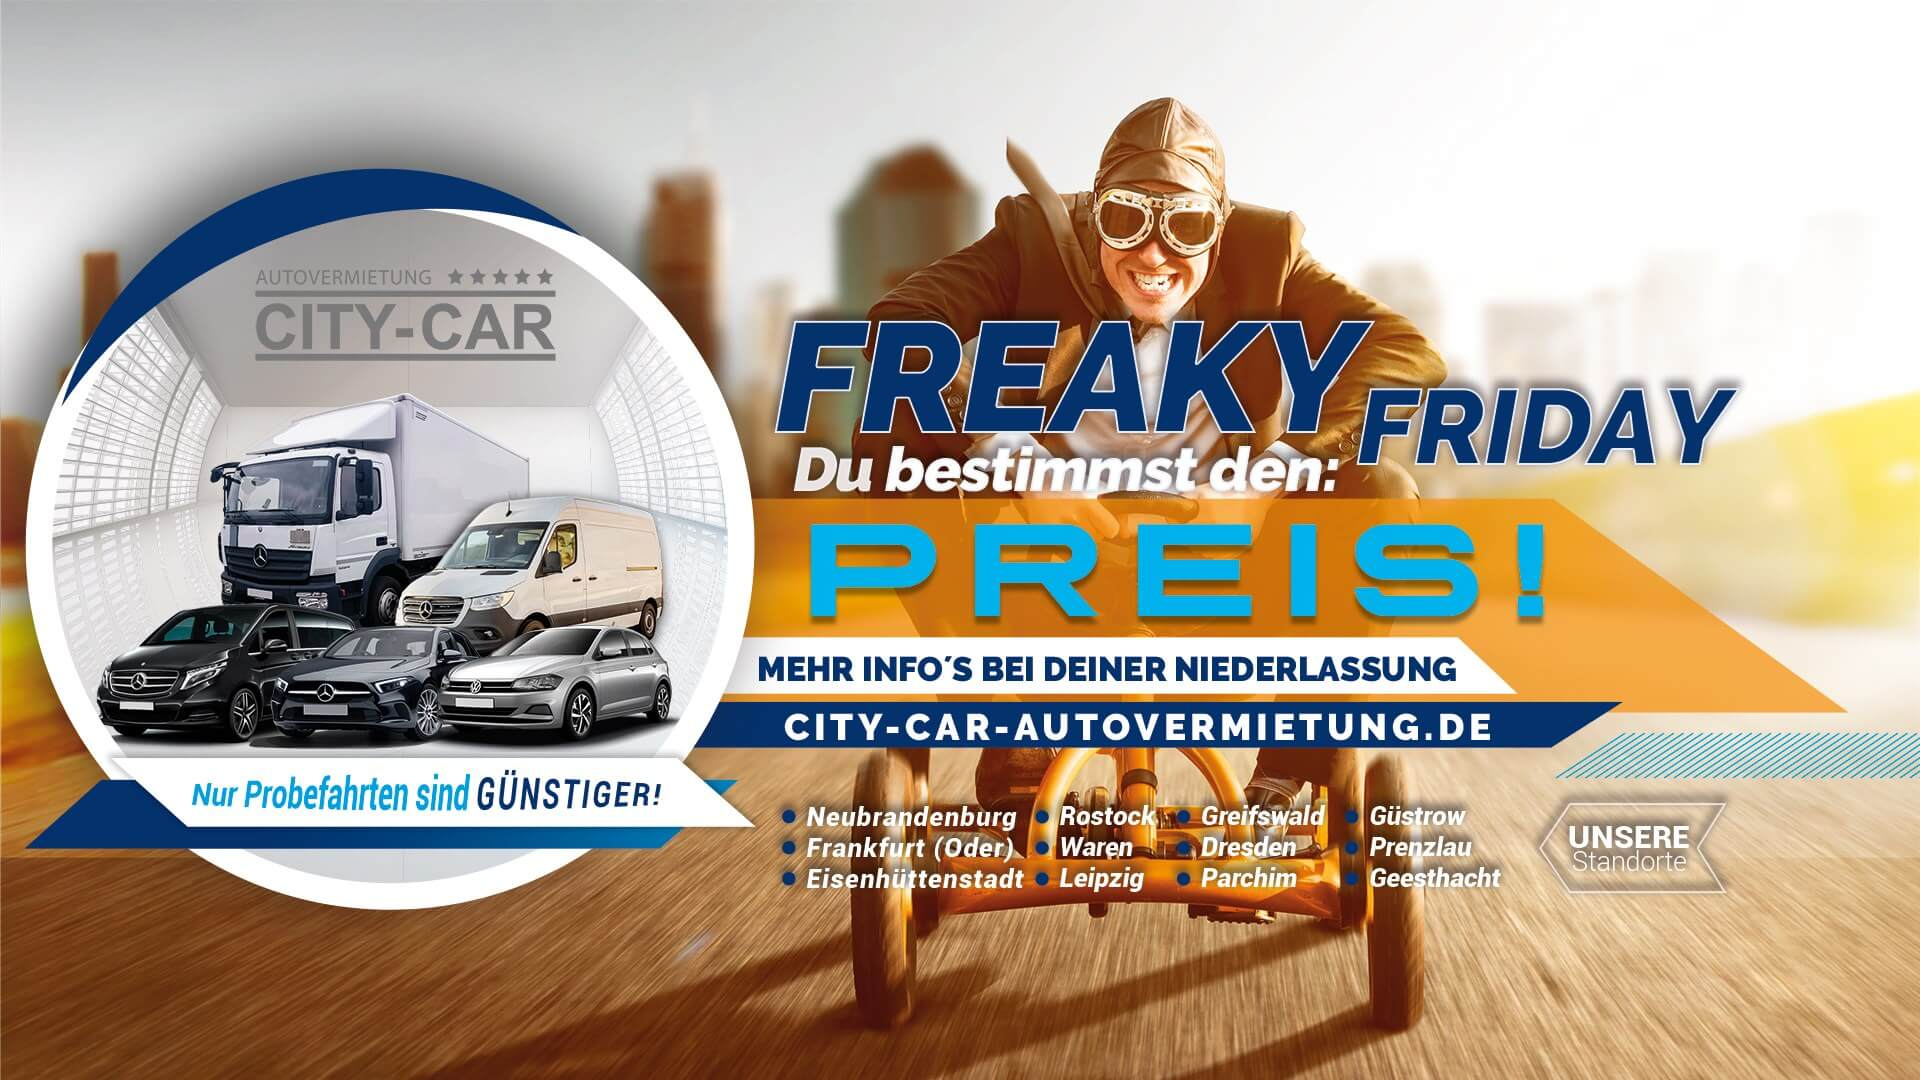 city-car-autovermietung-freaky-friday